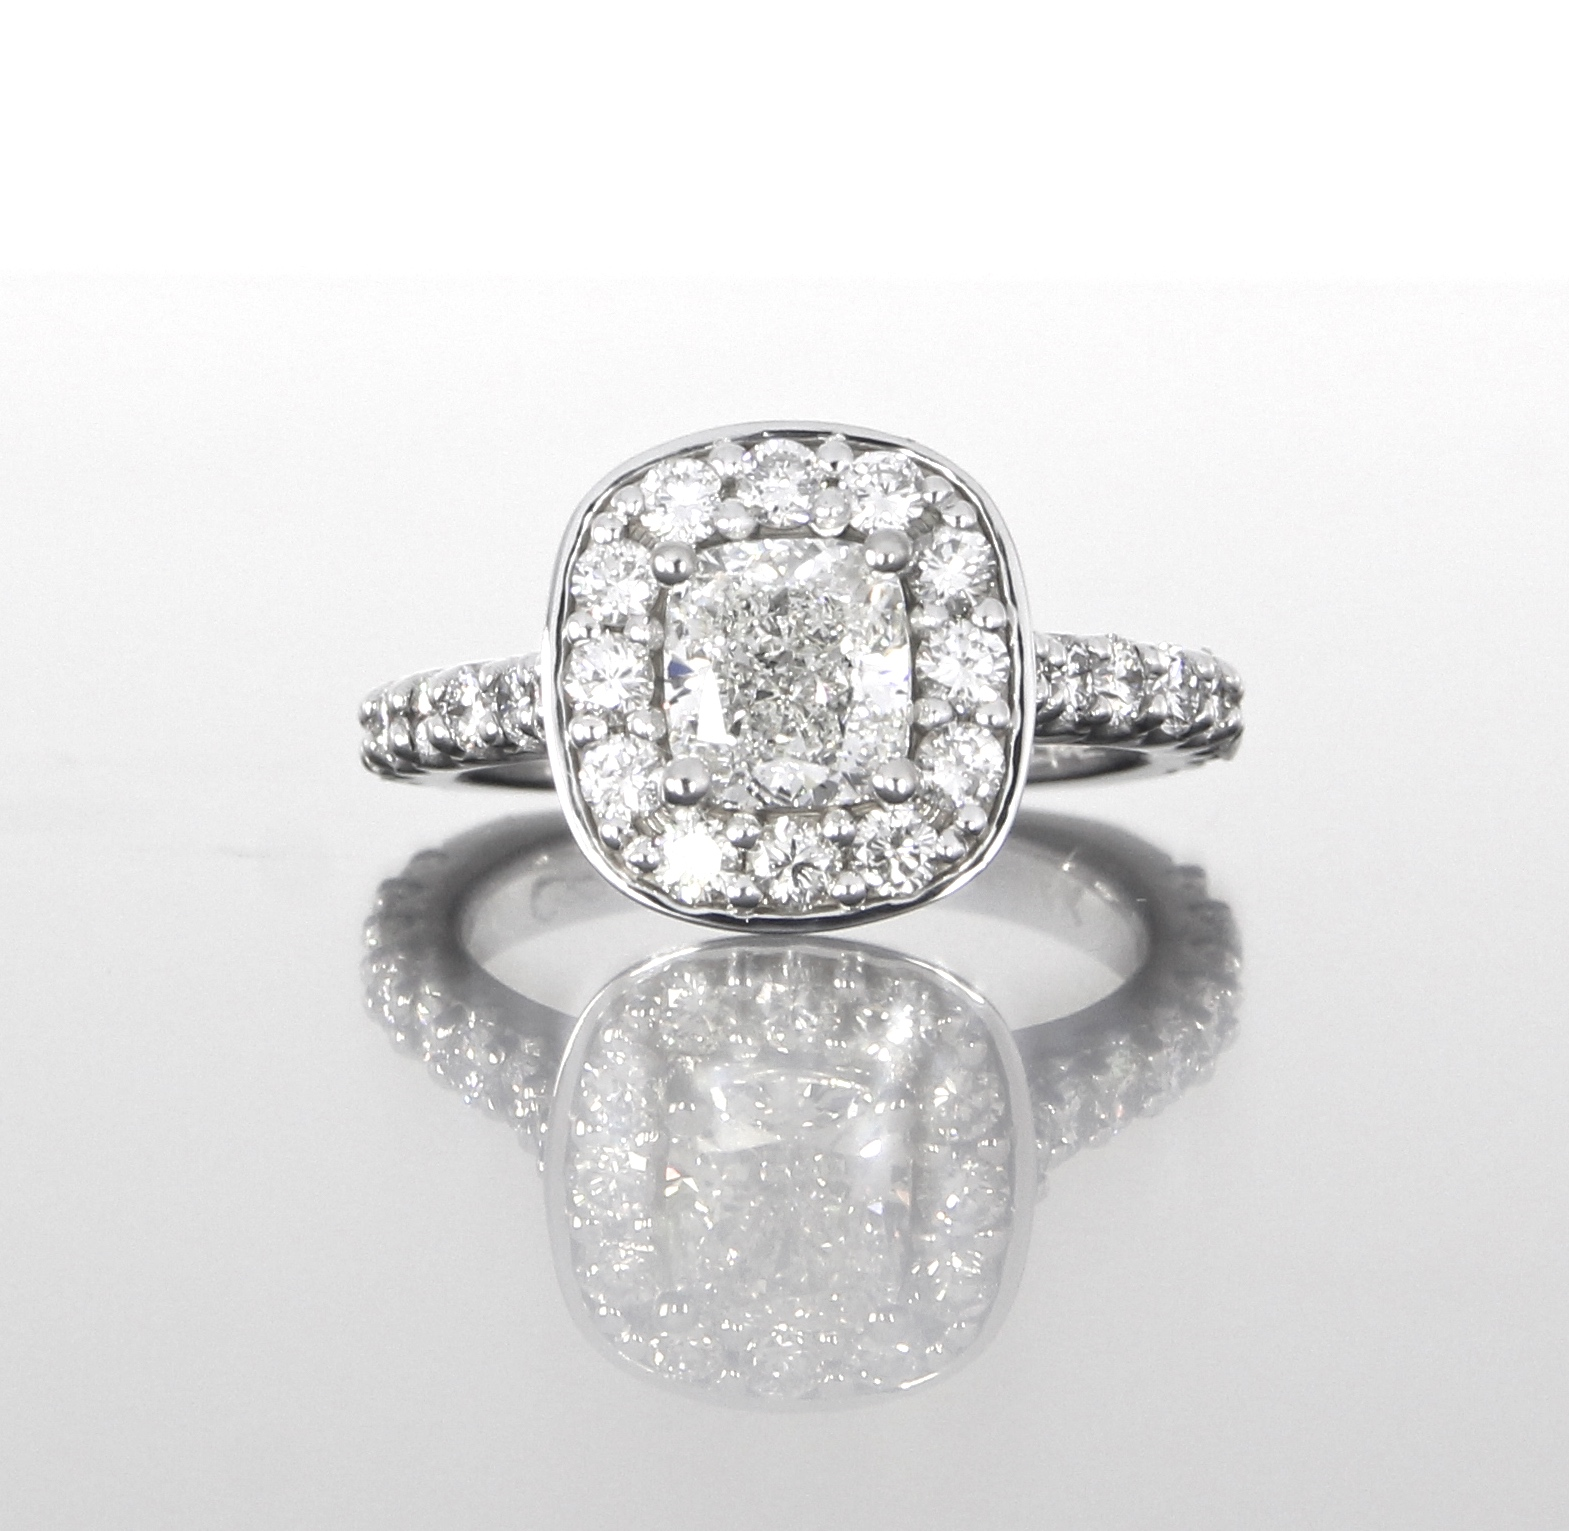 unique-cushion-cut-diamond-halo-engagement-ring-craft-revival-jewelry-store-grand-rapids.jpg